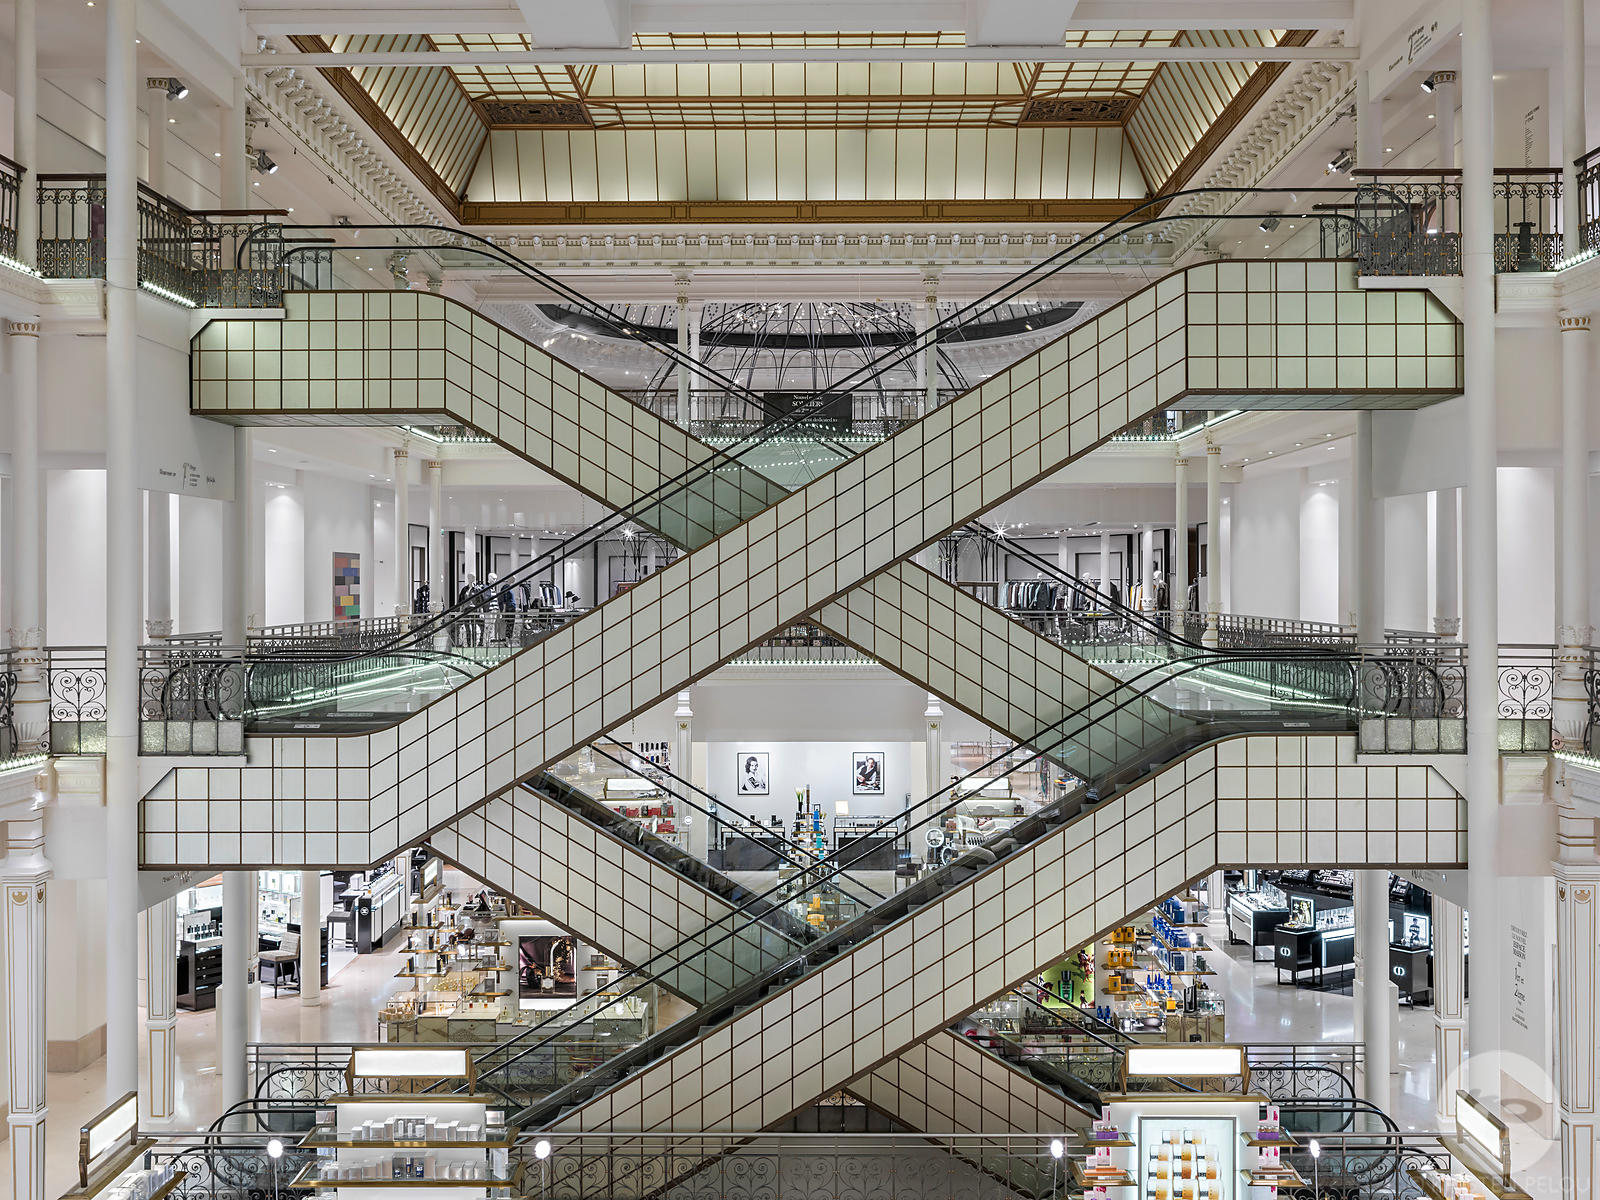 Photographe architecture retail boutique Paris - LE BON MARCHE RIVE GAUCHE PARIS